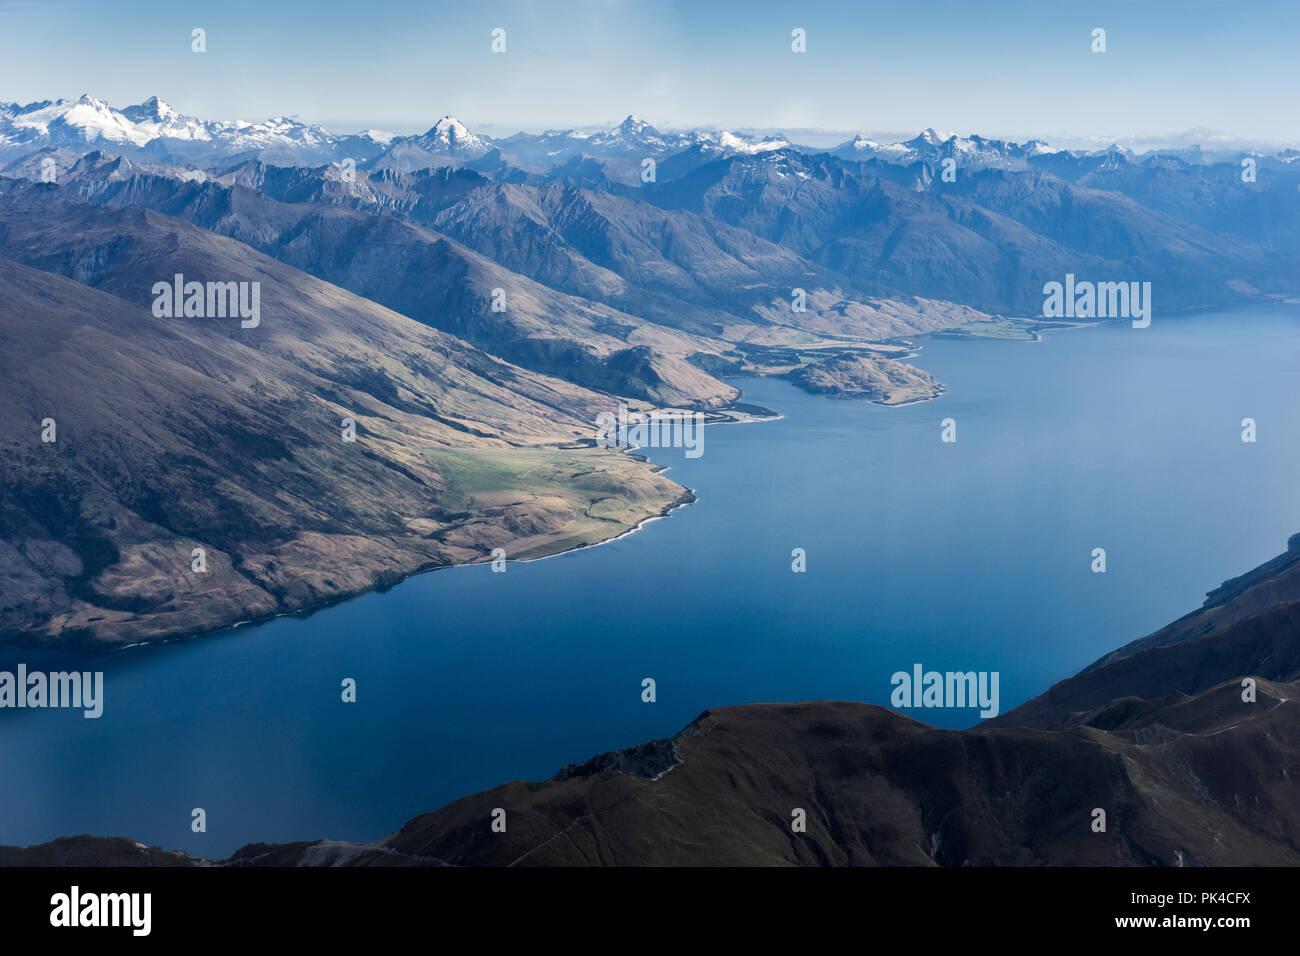 Scenic flight Over New Zealand National Park With Pristine River Views - Stock Image